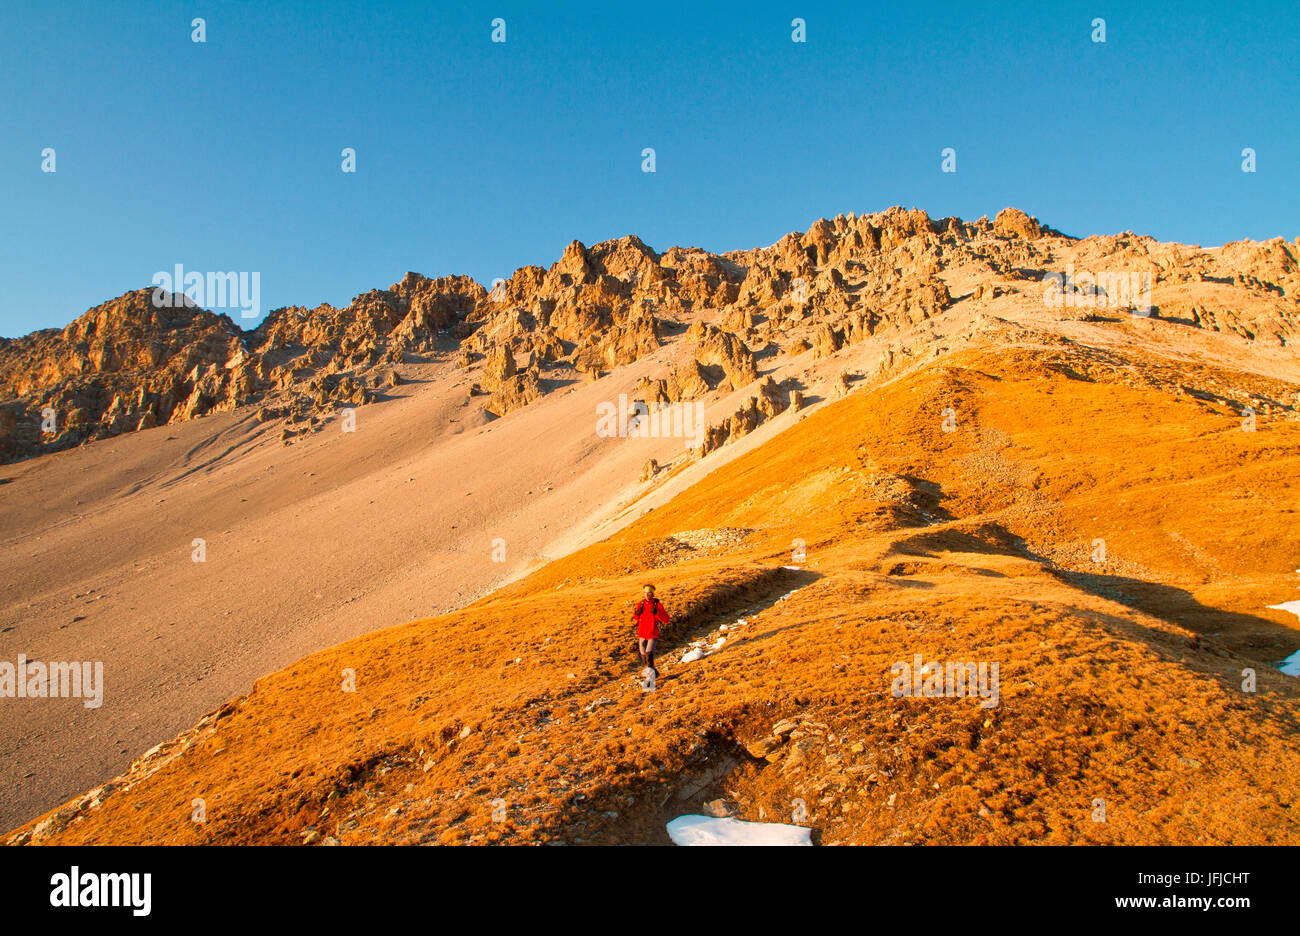 Europe, Italy, Lombardy, Trekking along Ables pass in Valfurva mountains - Stock Image